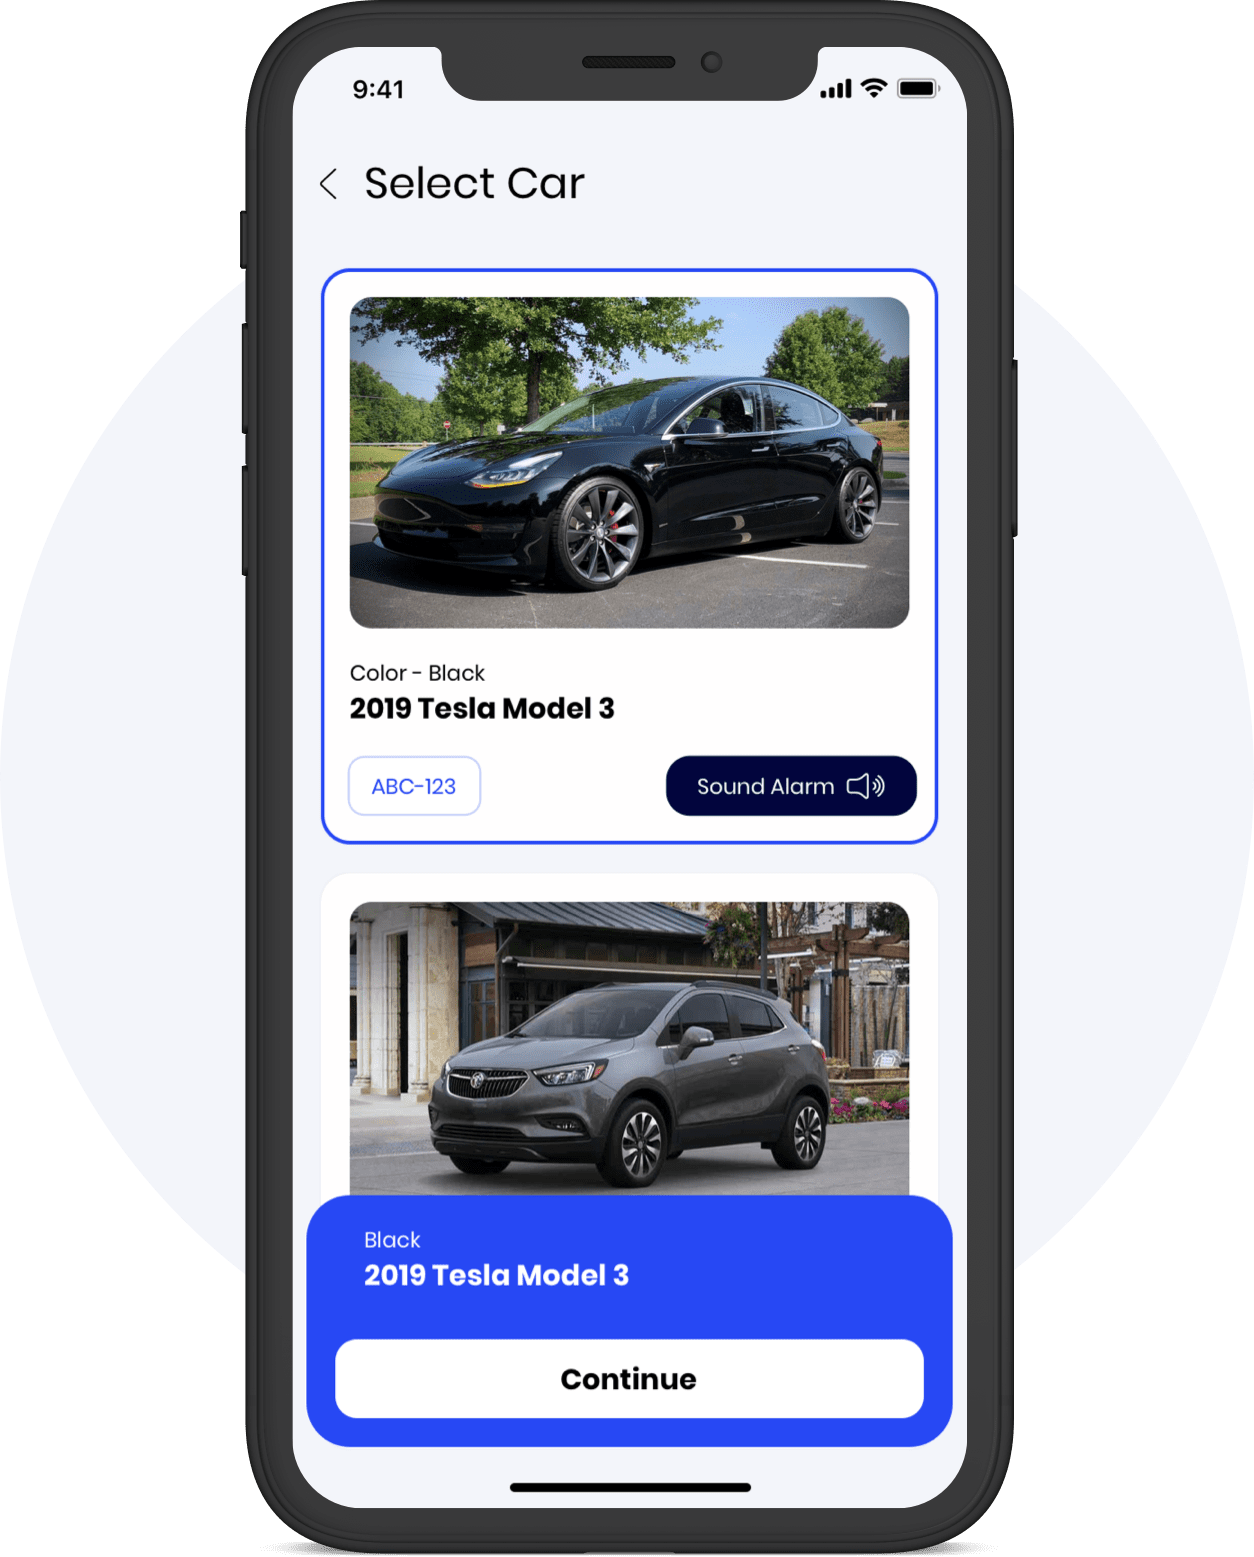 Caramel app select car screen